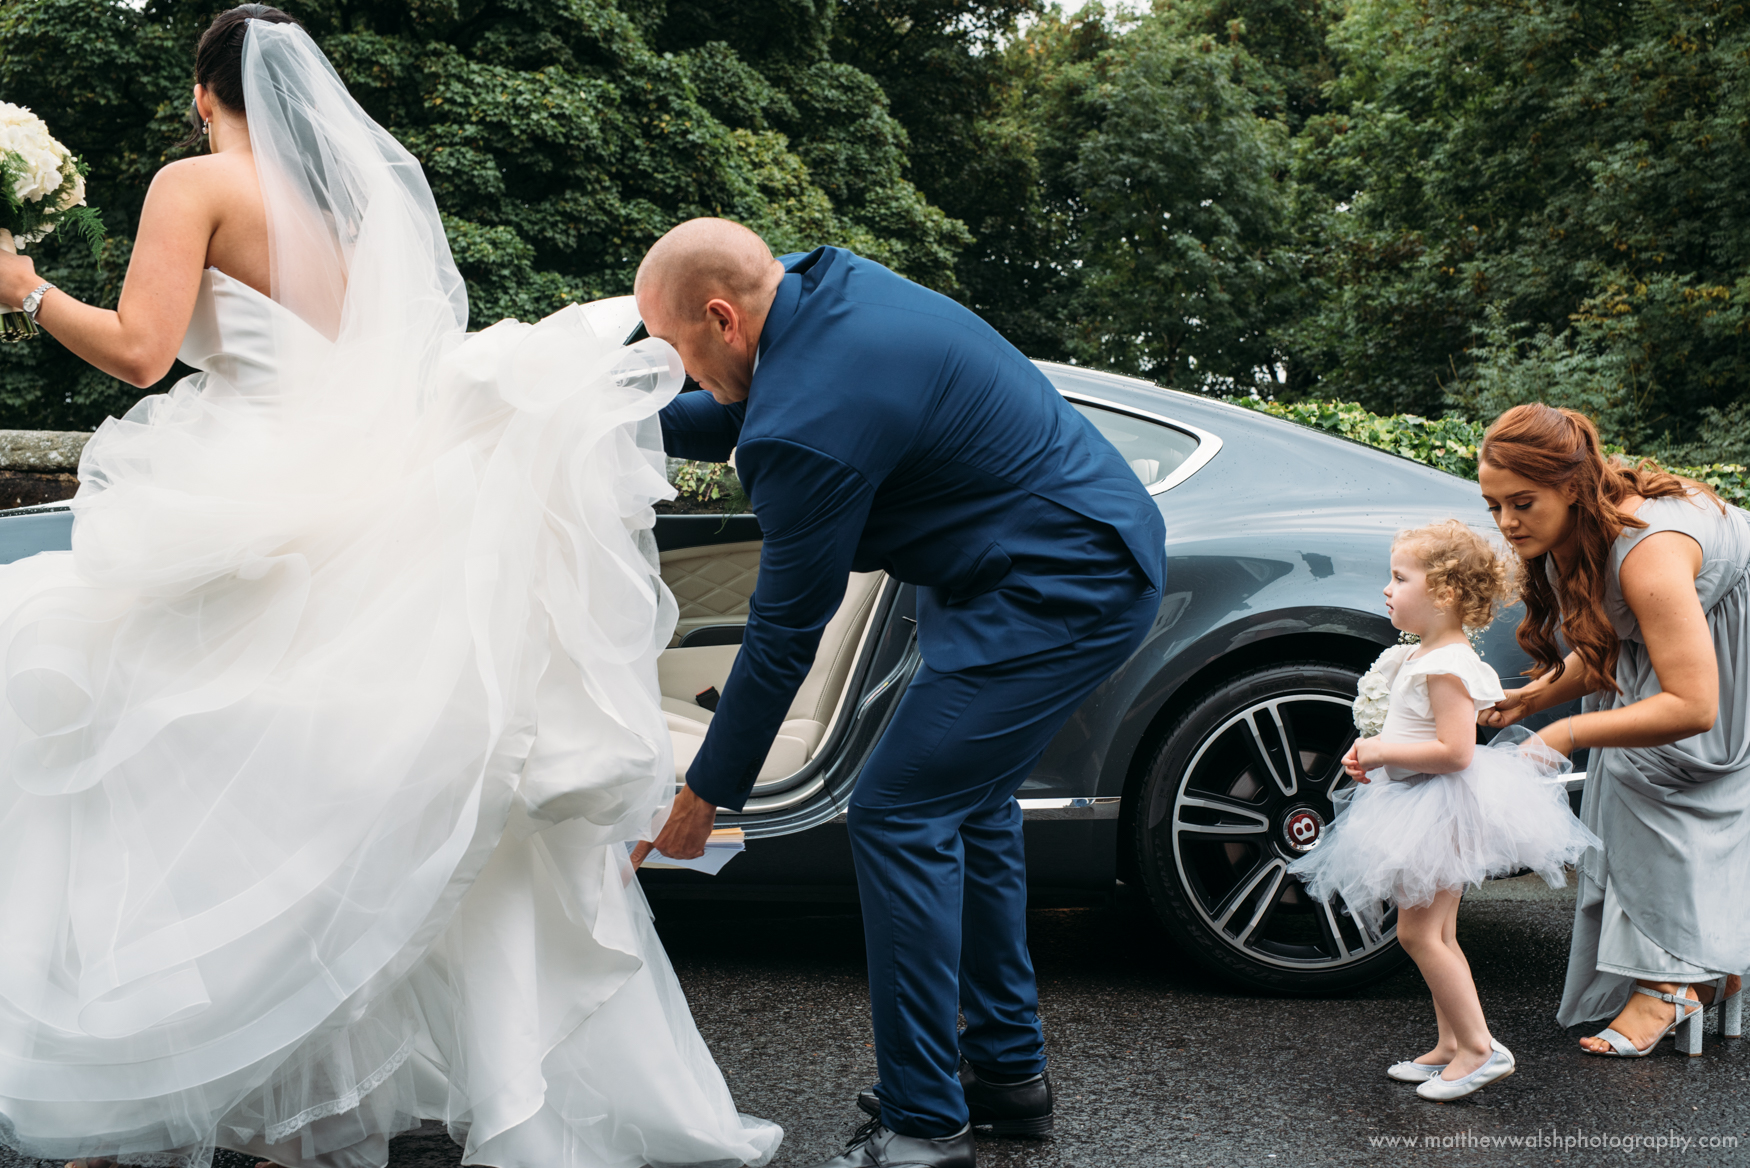 One of the ushers helps the bride to get out of the wedding car